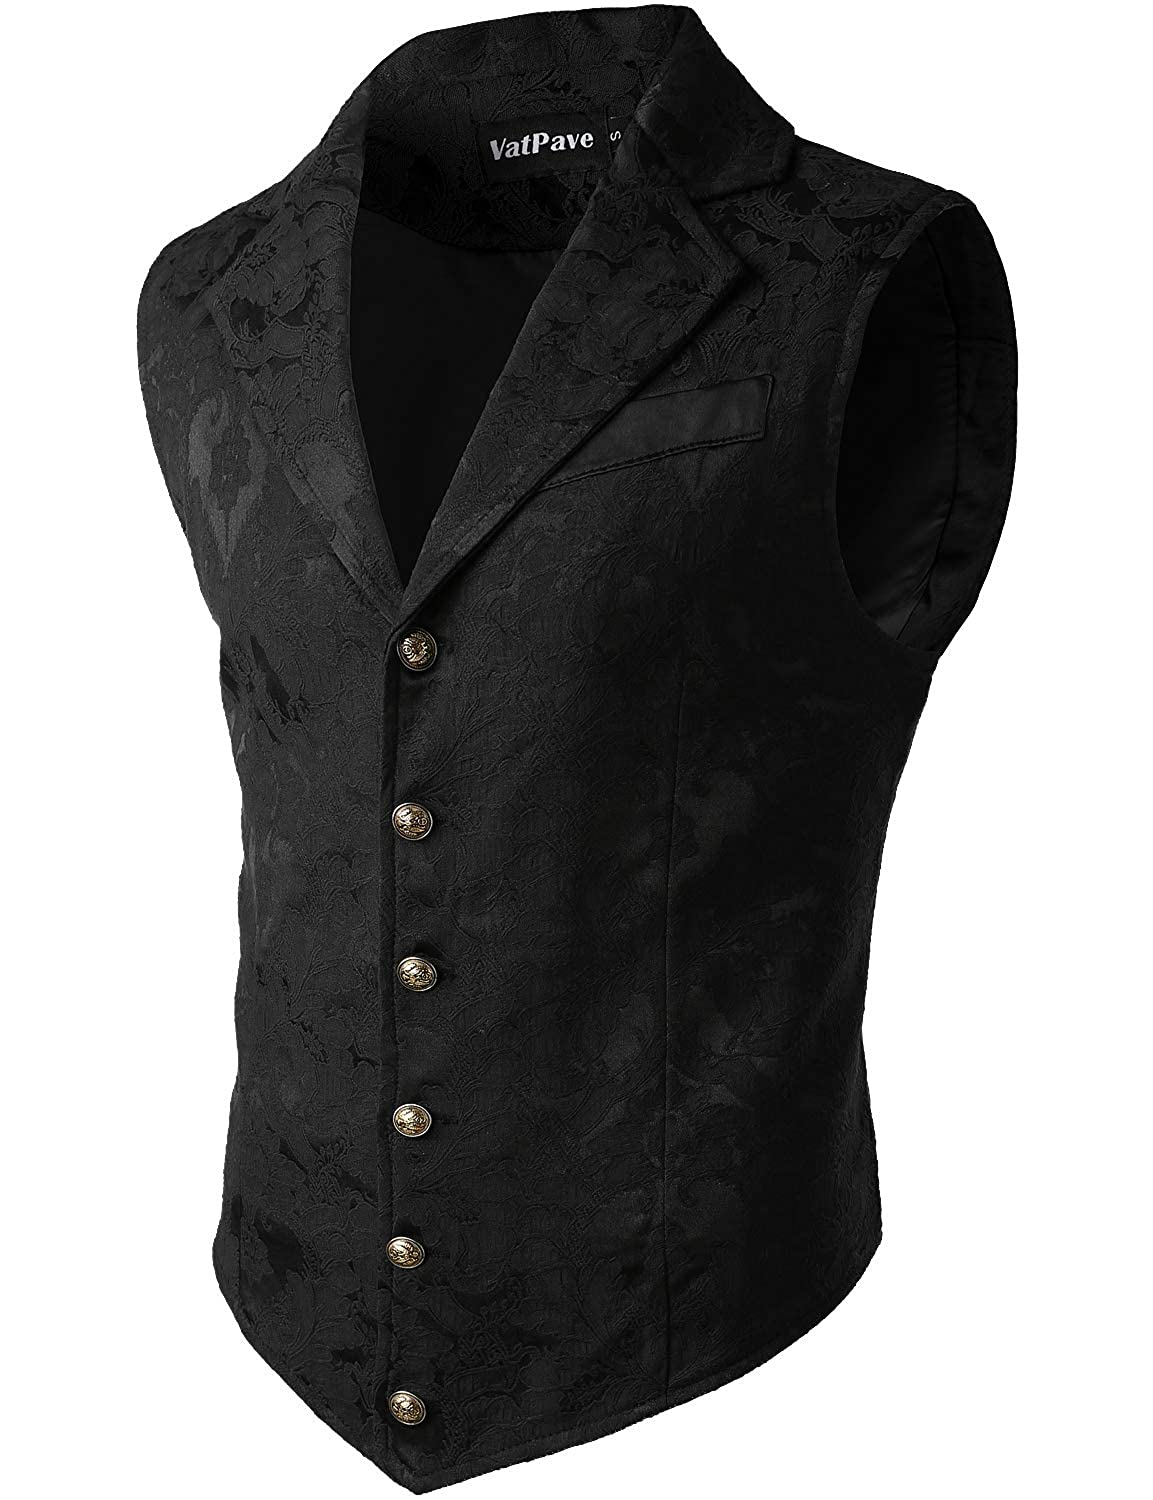 Men's Steampunk Costume Essentials VATPAVE Mens Victorian Suit Vest Steampunk Gothic Waistcoat $32.99 AT vintagedancer.com